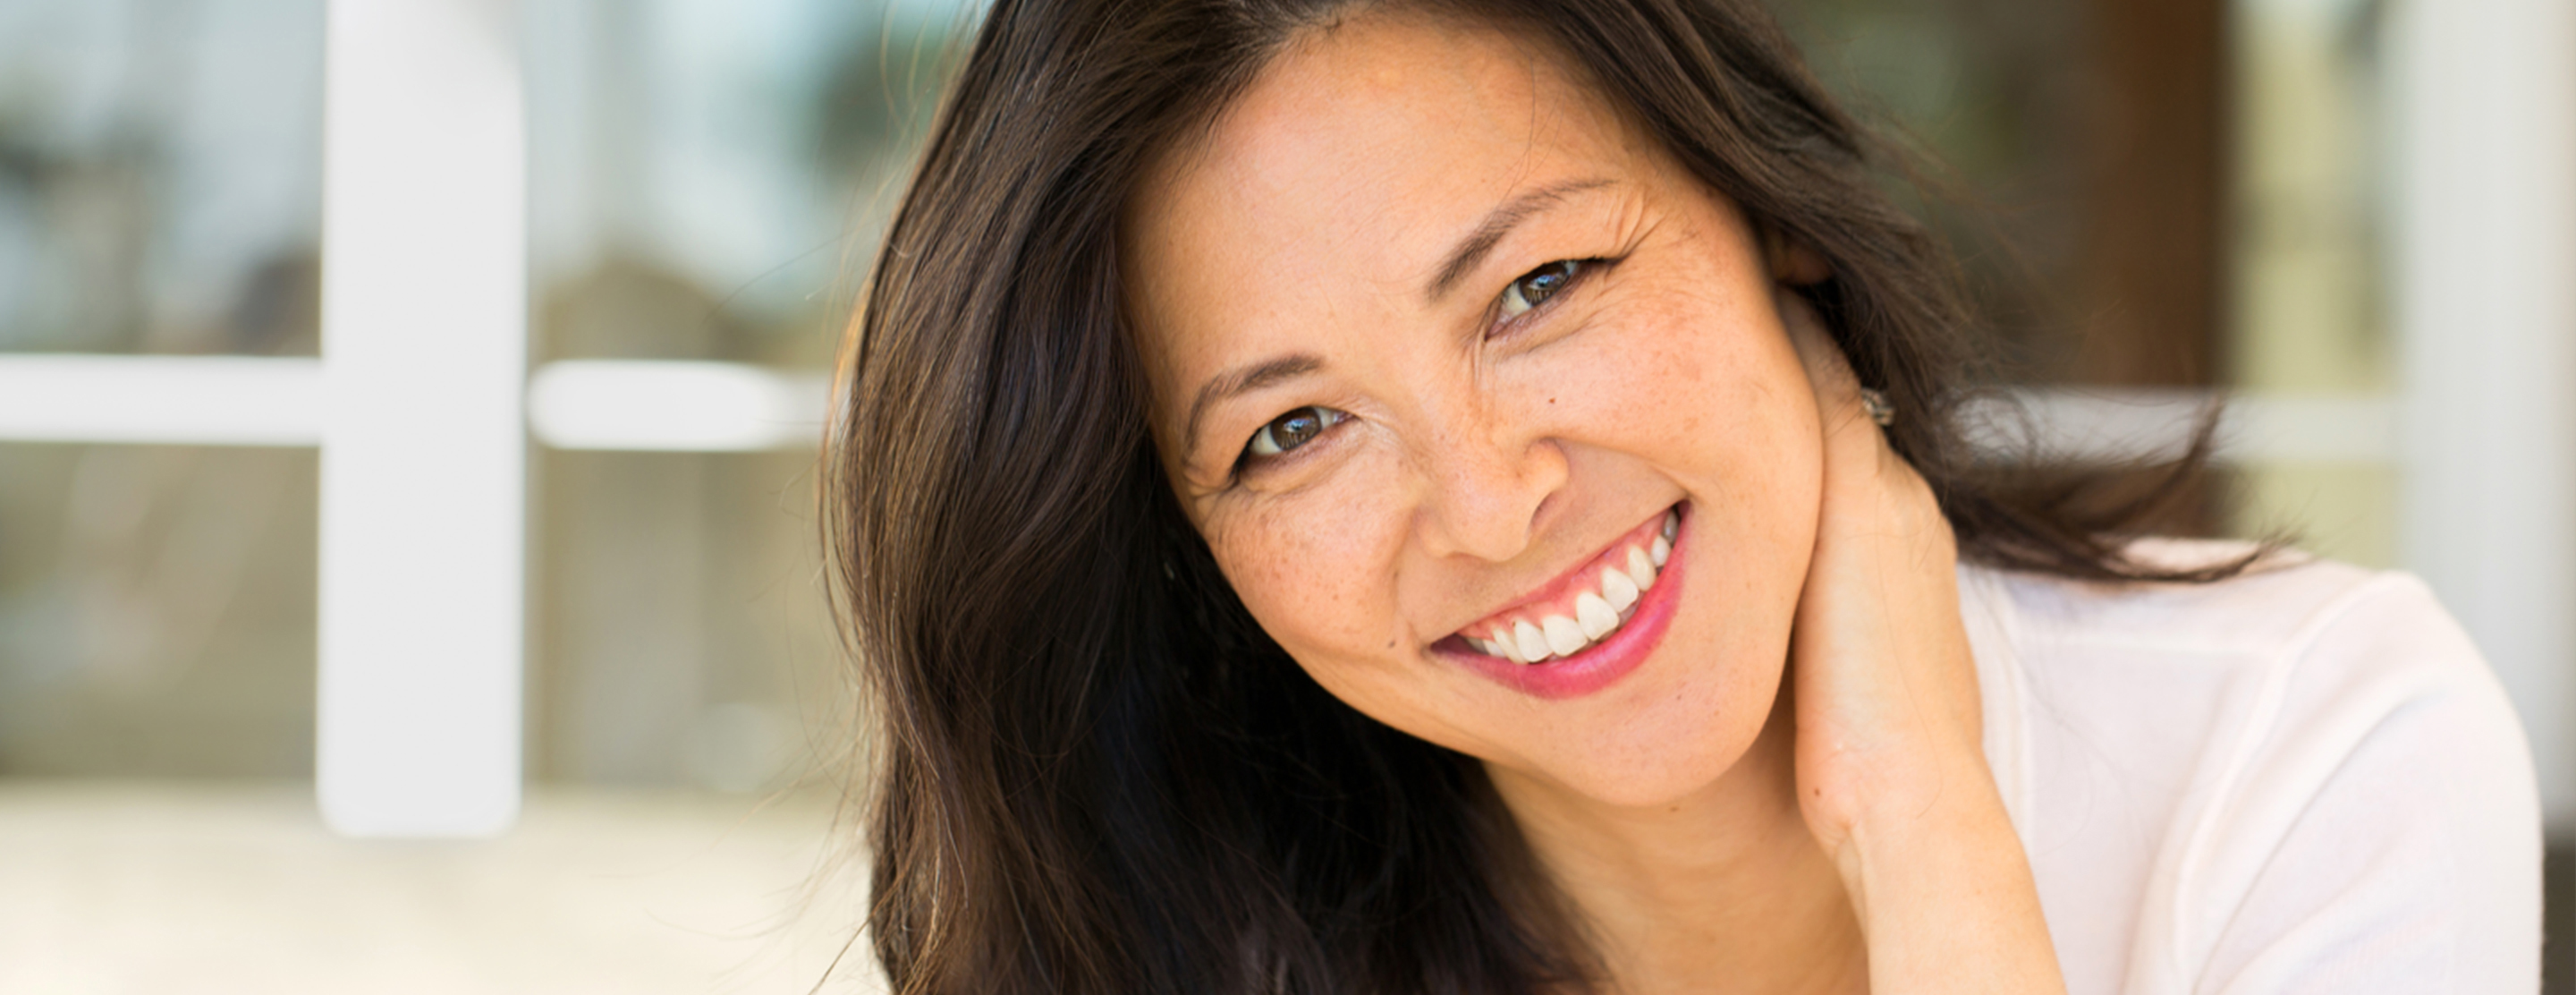 Skin Resurfacing Conditions Treatments Ucsf Health